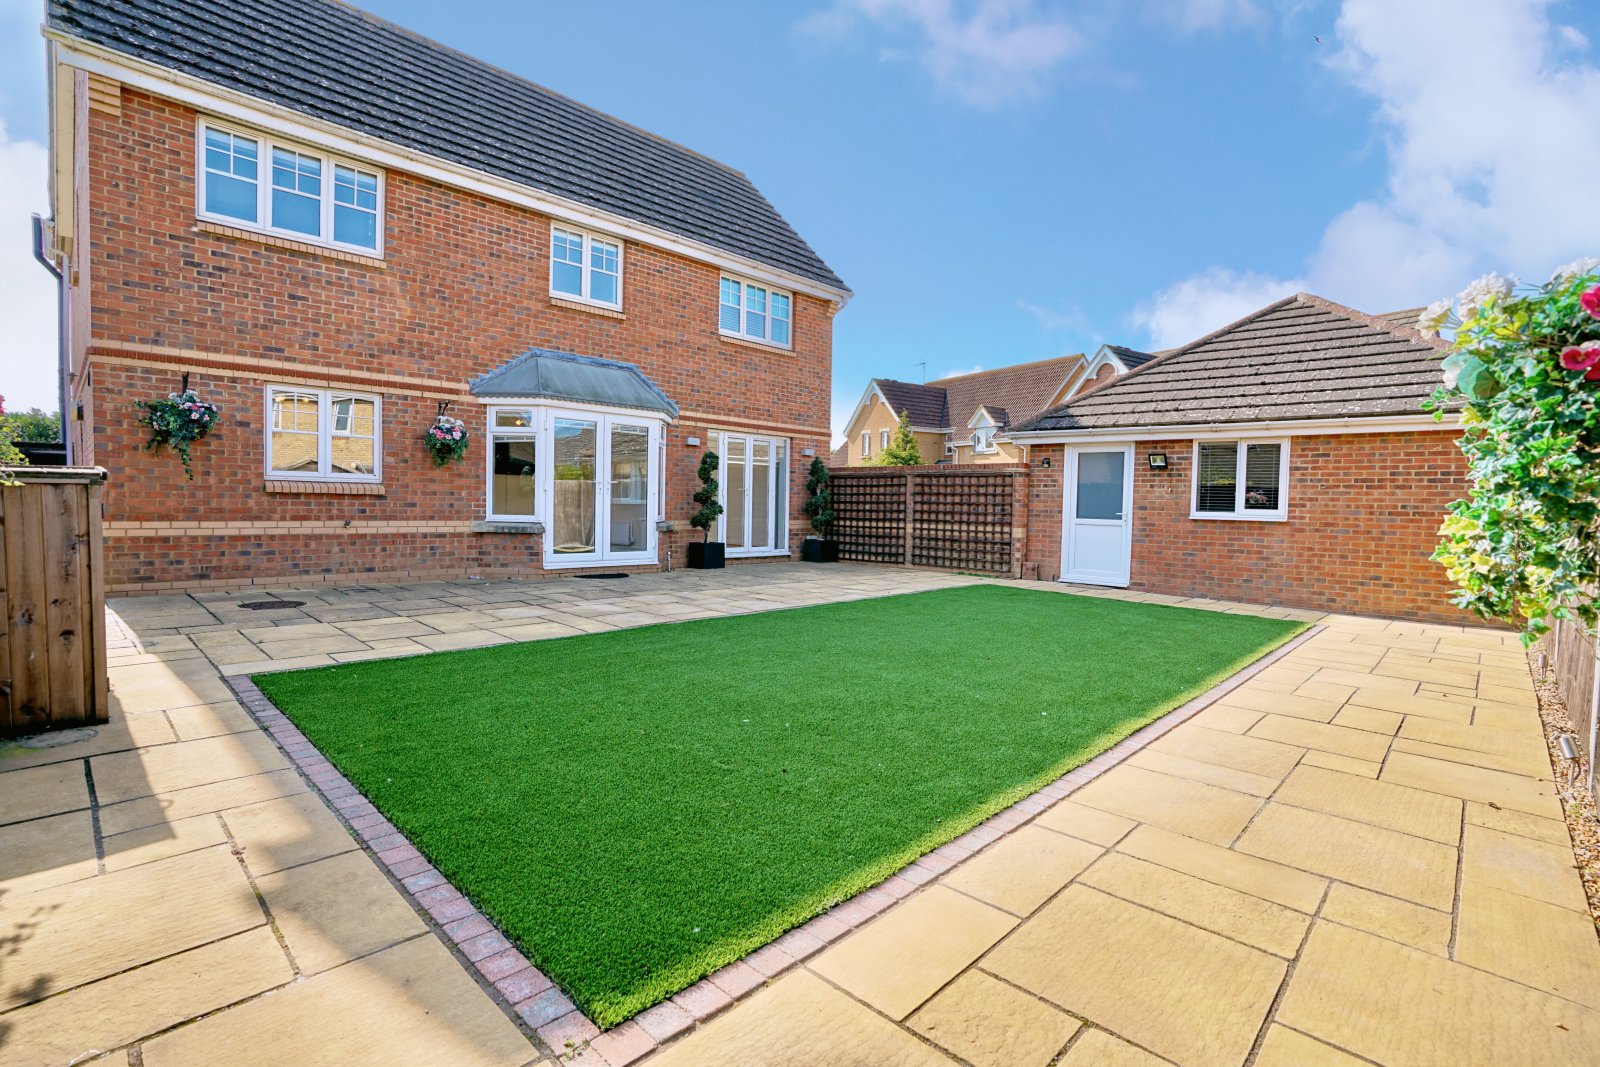 4 bed house for sale in Fenstanton, PE28 9FE  - Property Image 1